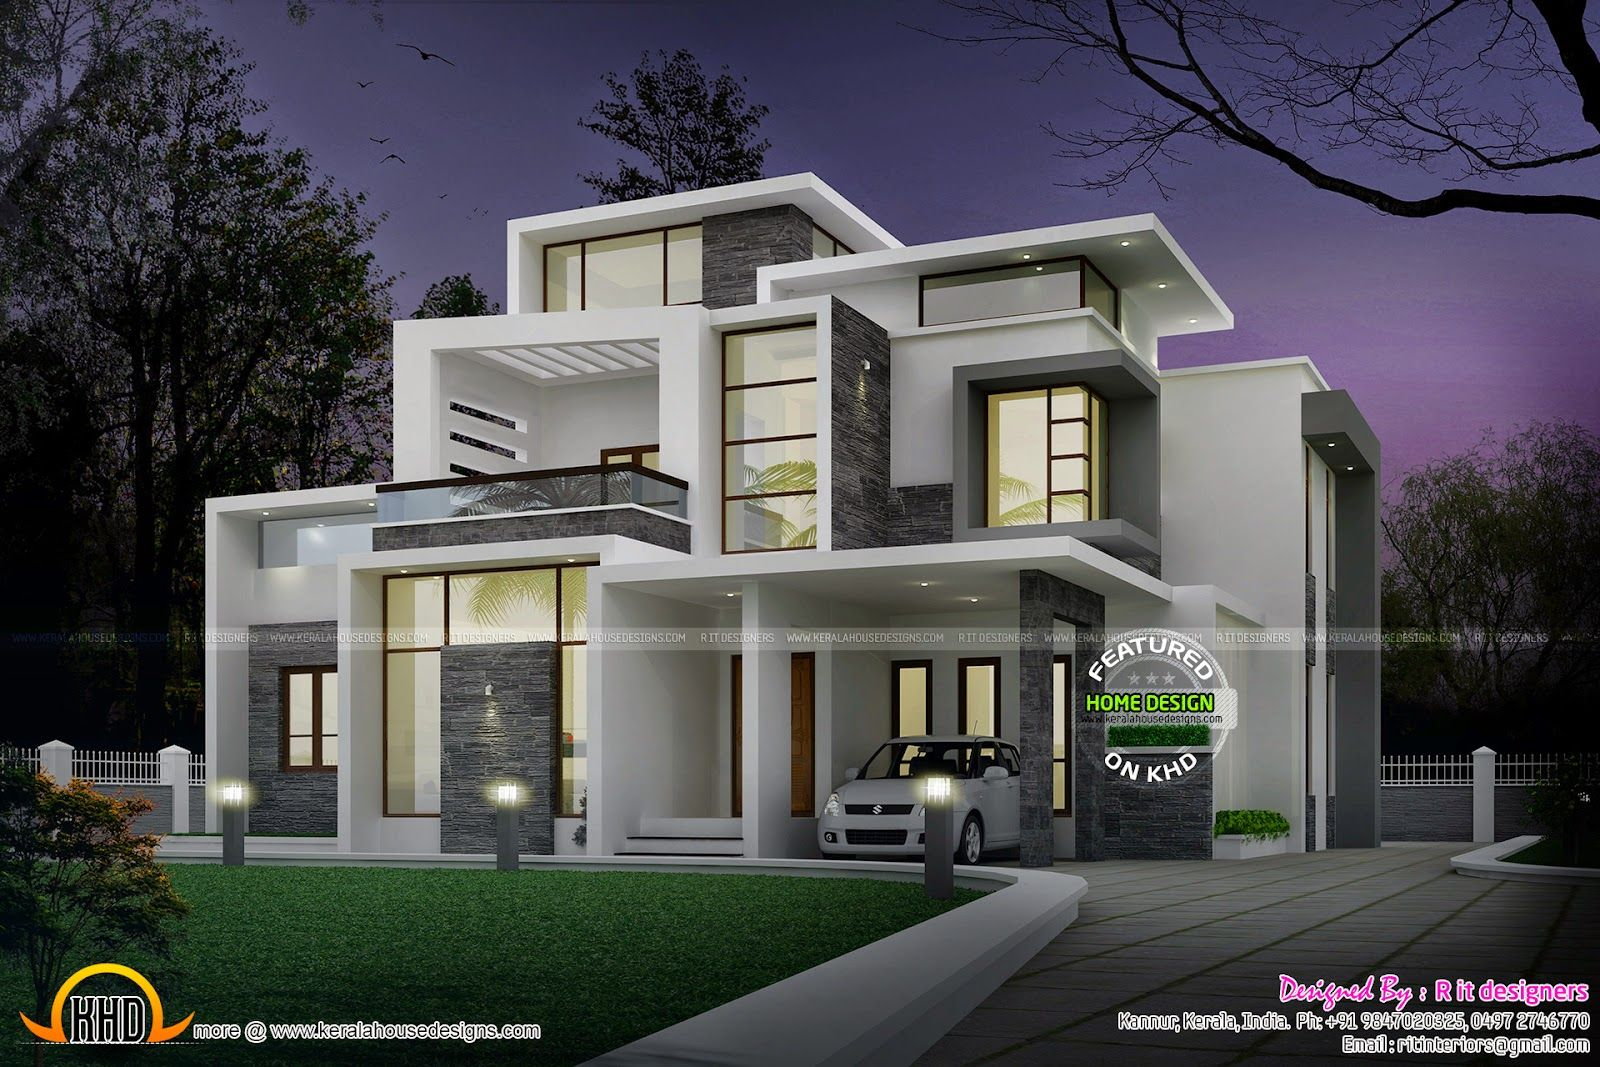 Grand contemporary home design kerala home design and for Small contemporary house plans in kerala